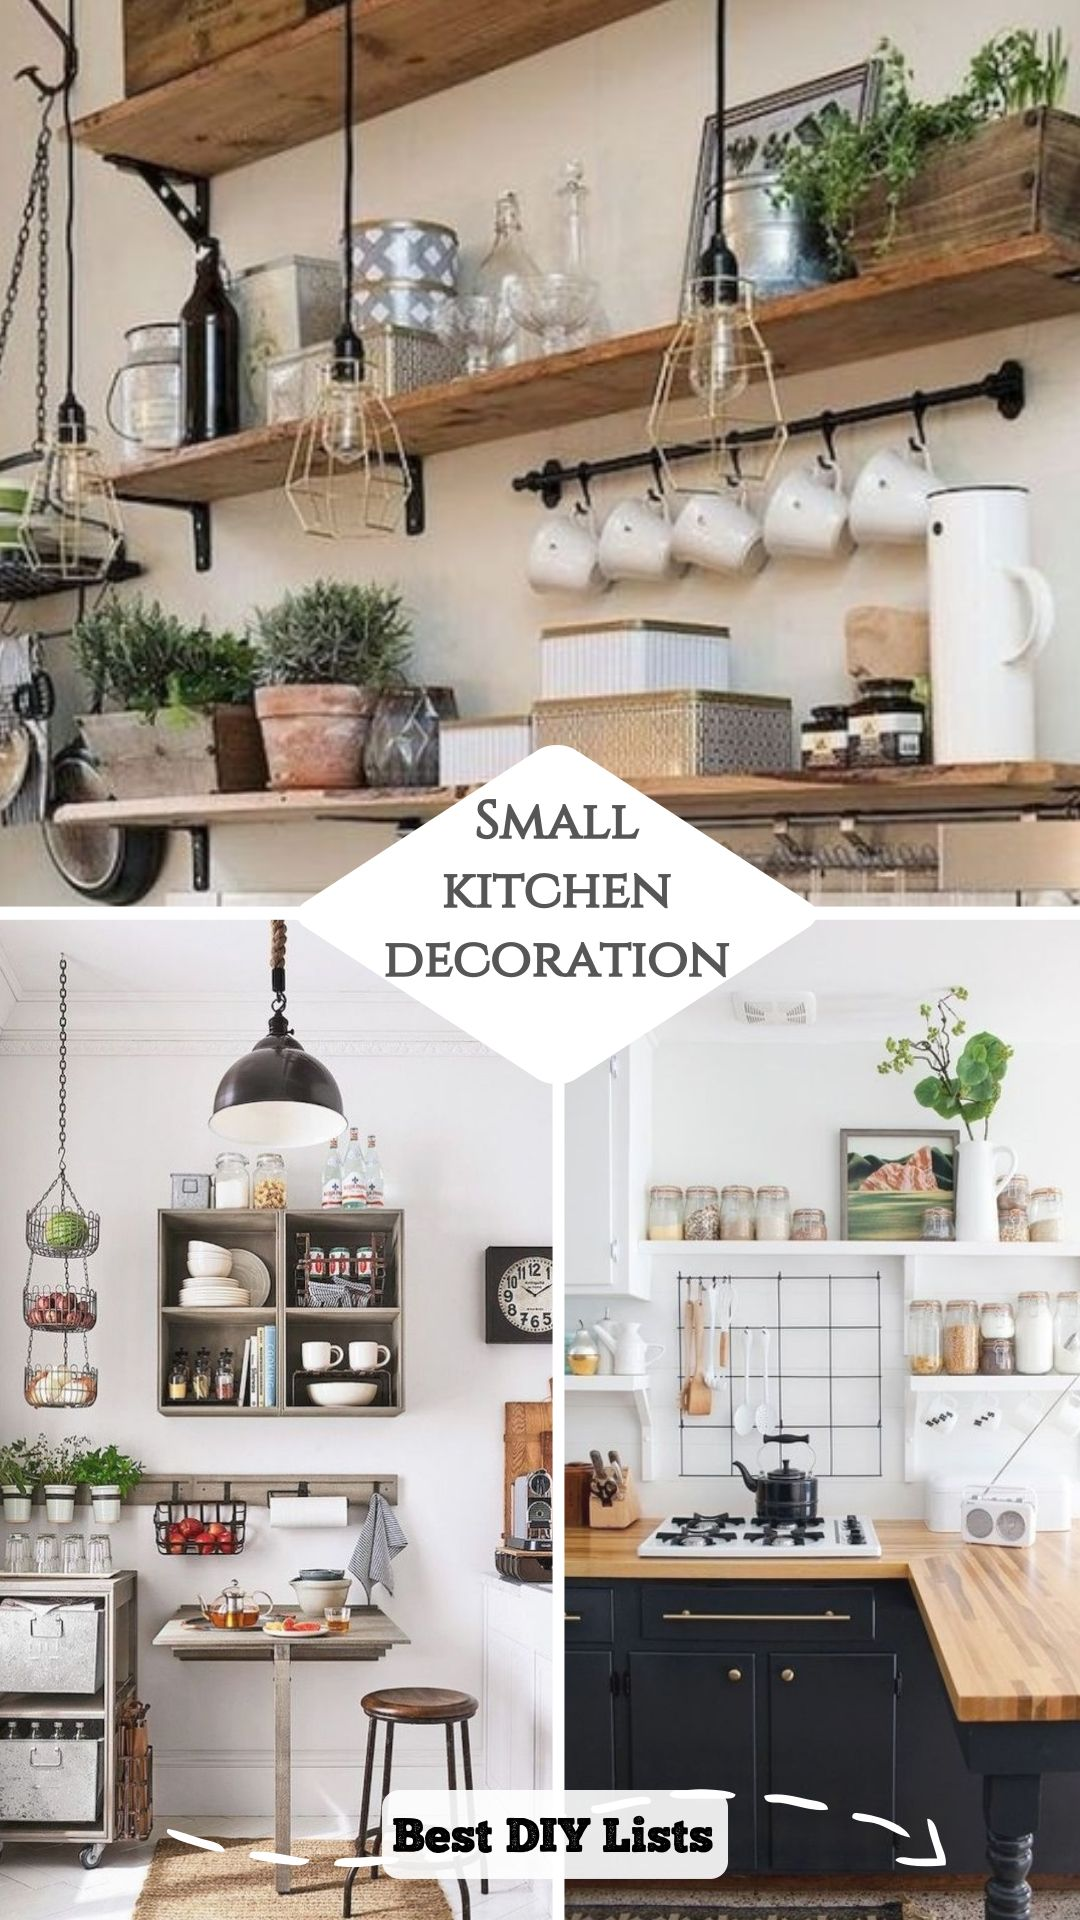 Small Kitchen Decoration Ideas Home Remodeling Home Decor Kitchen Cute Home Decor